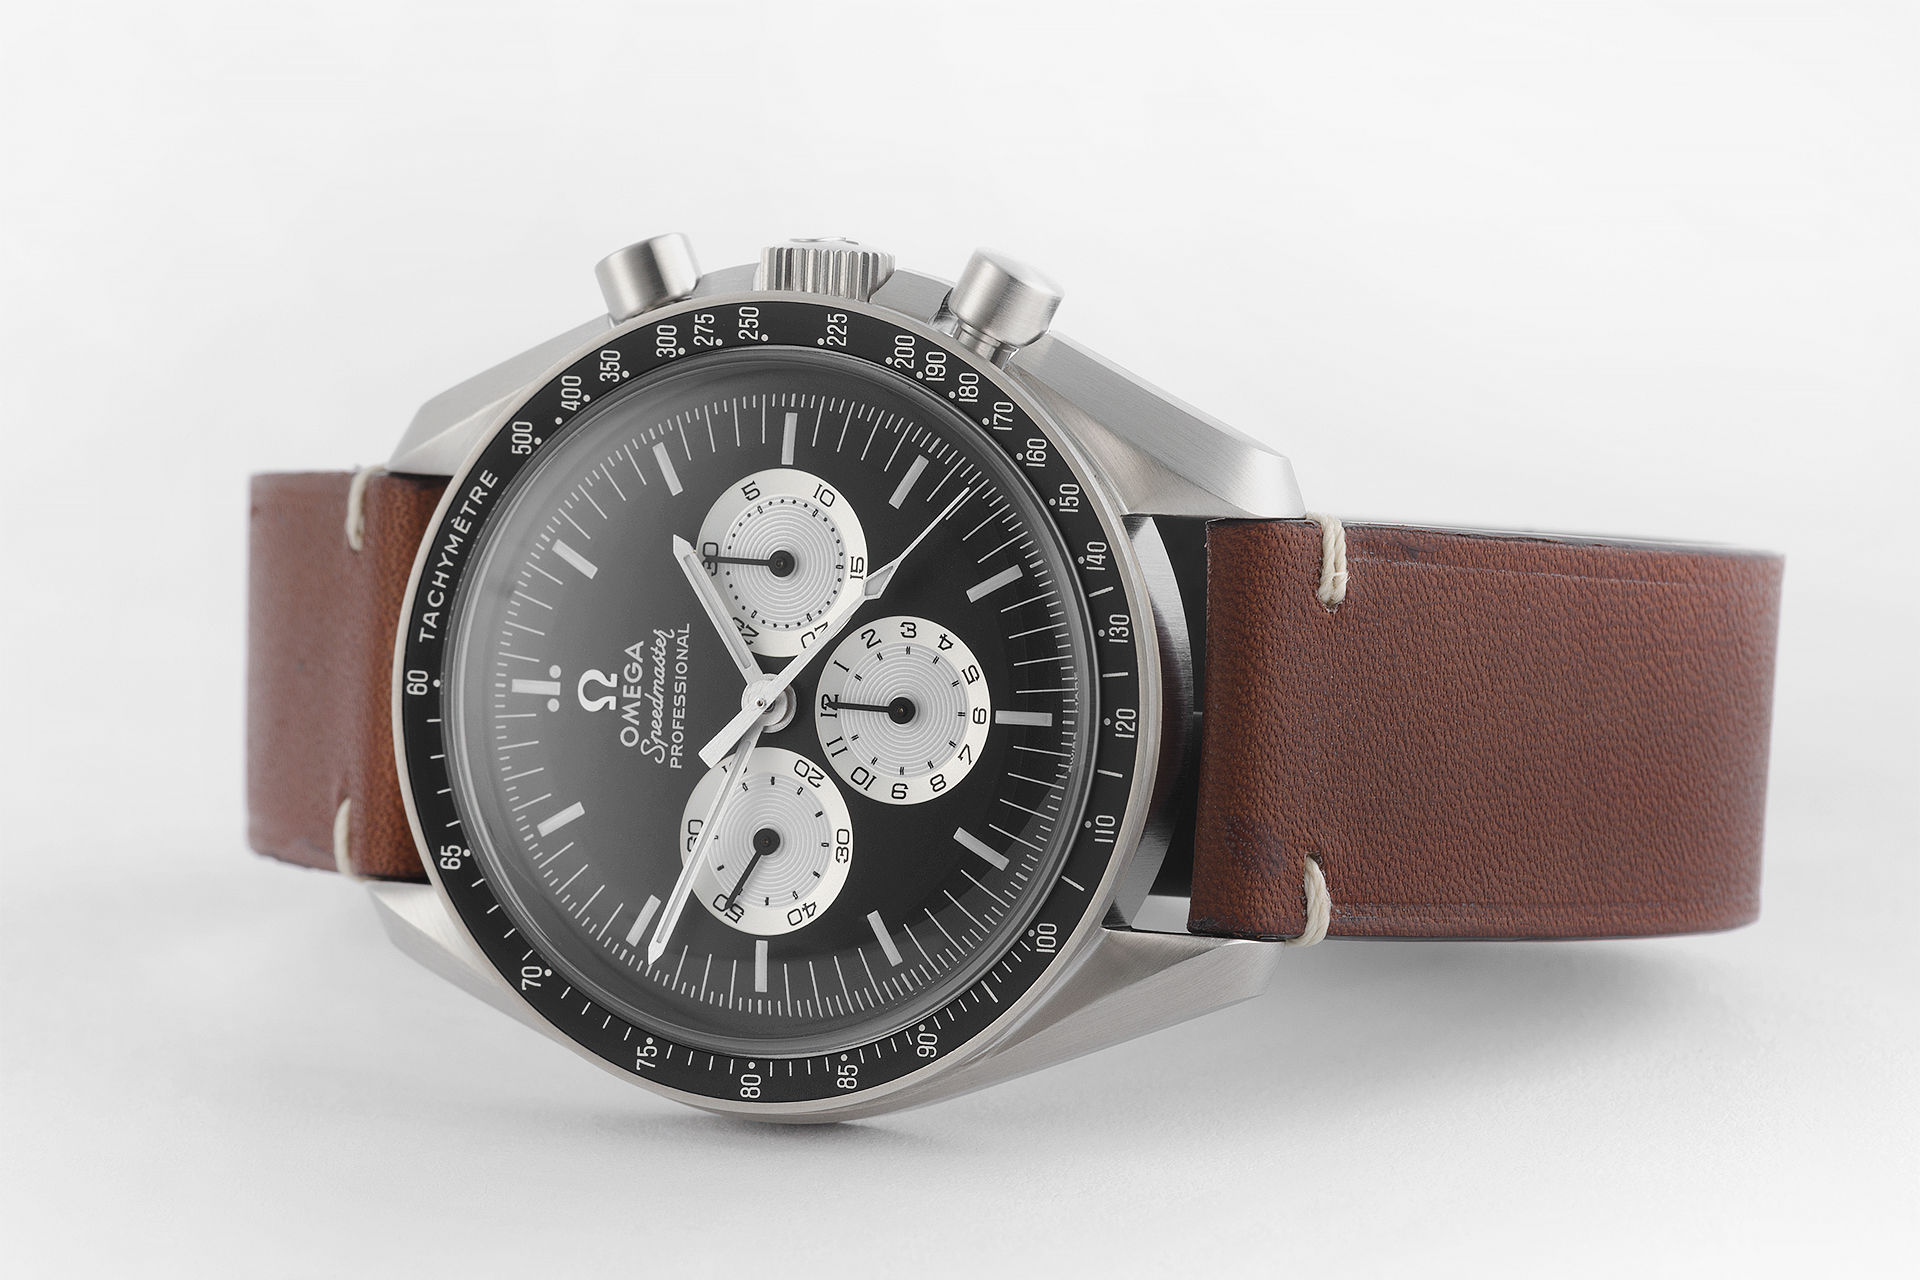 ref 31132423001001 | Limited Edition Speedy Tuesday | Omega Speedmaster